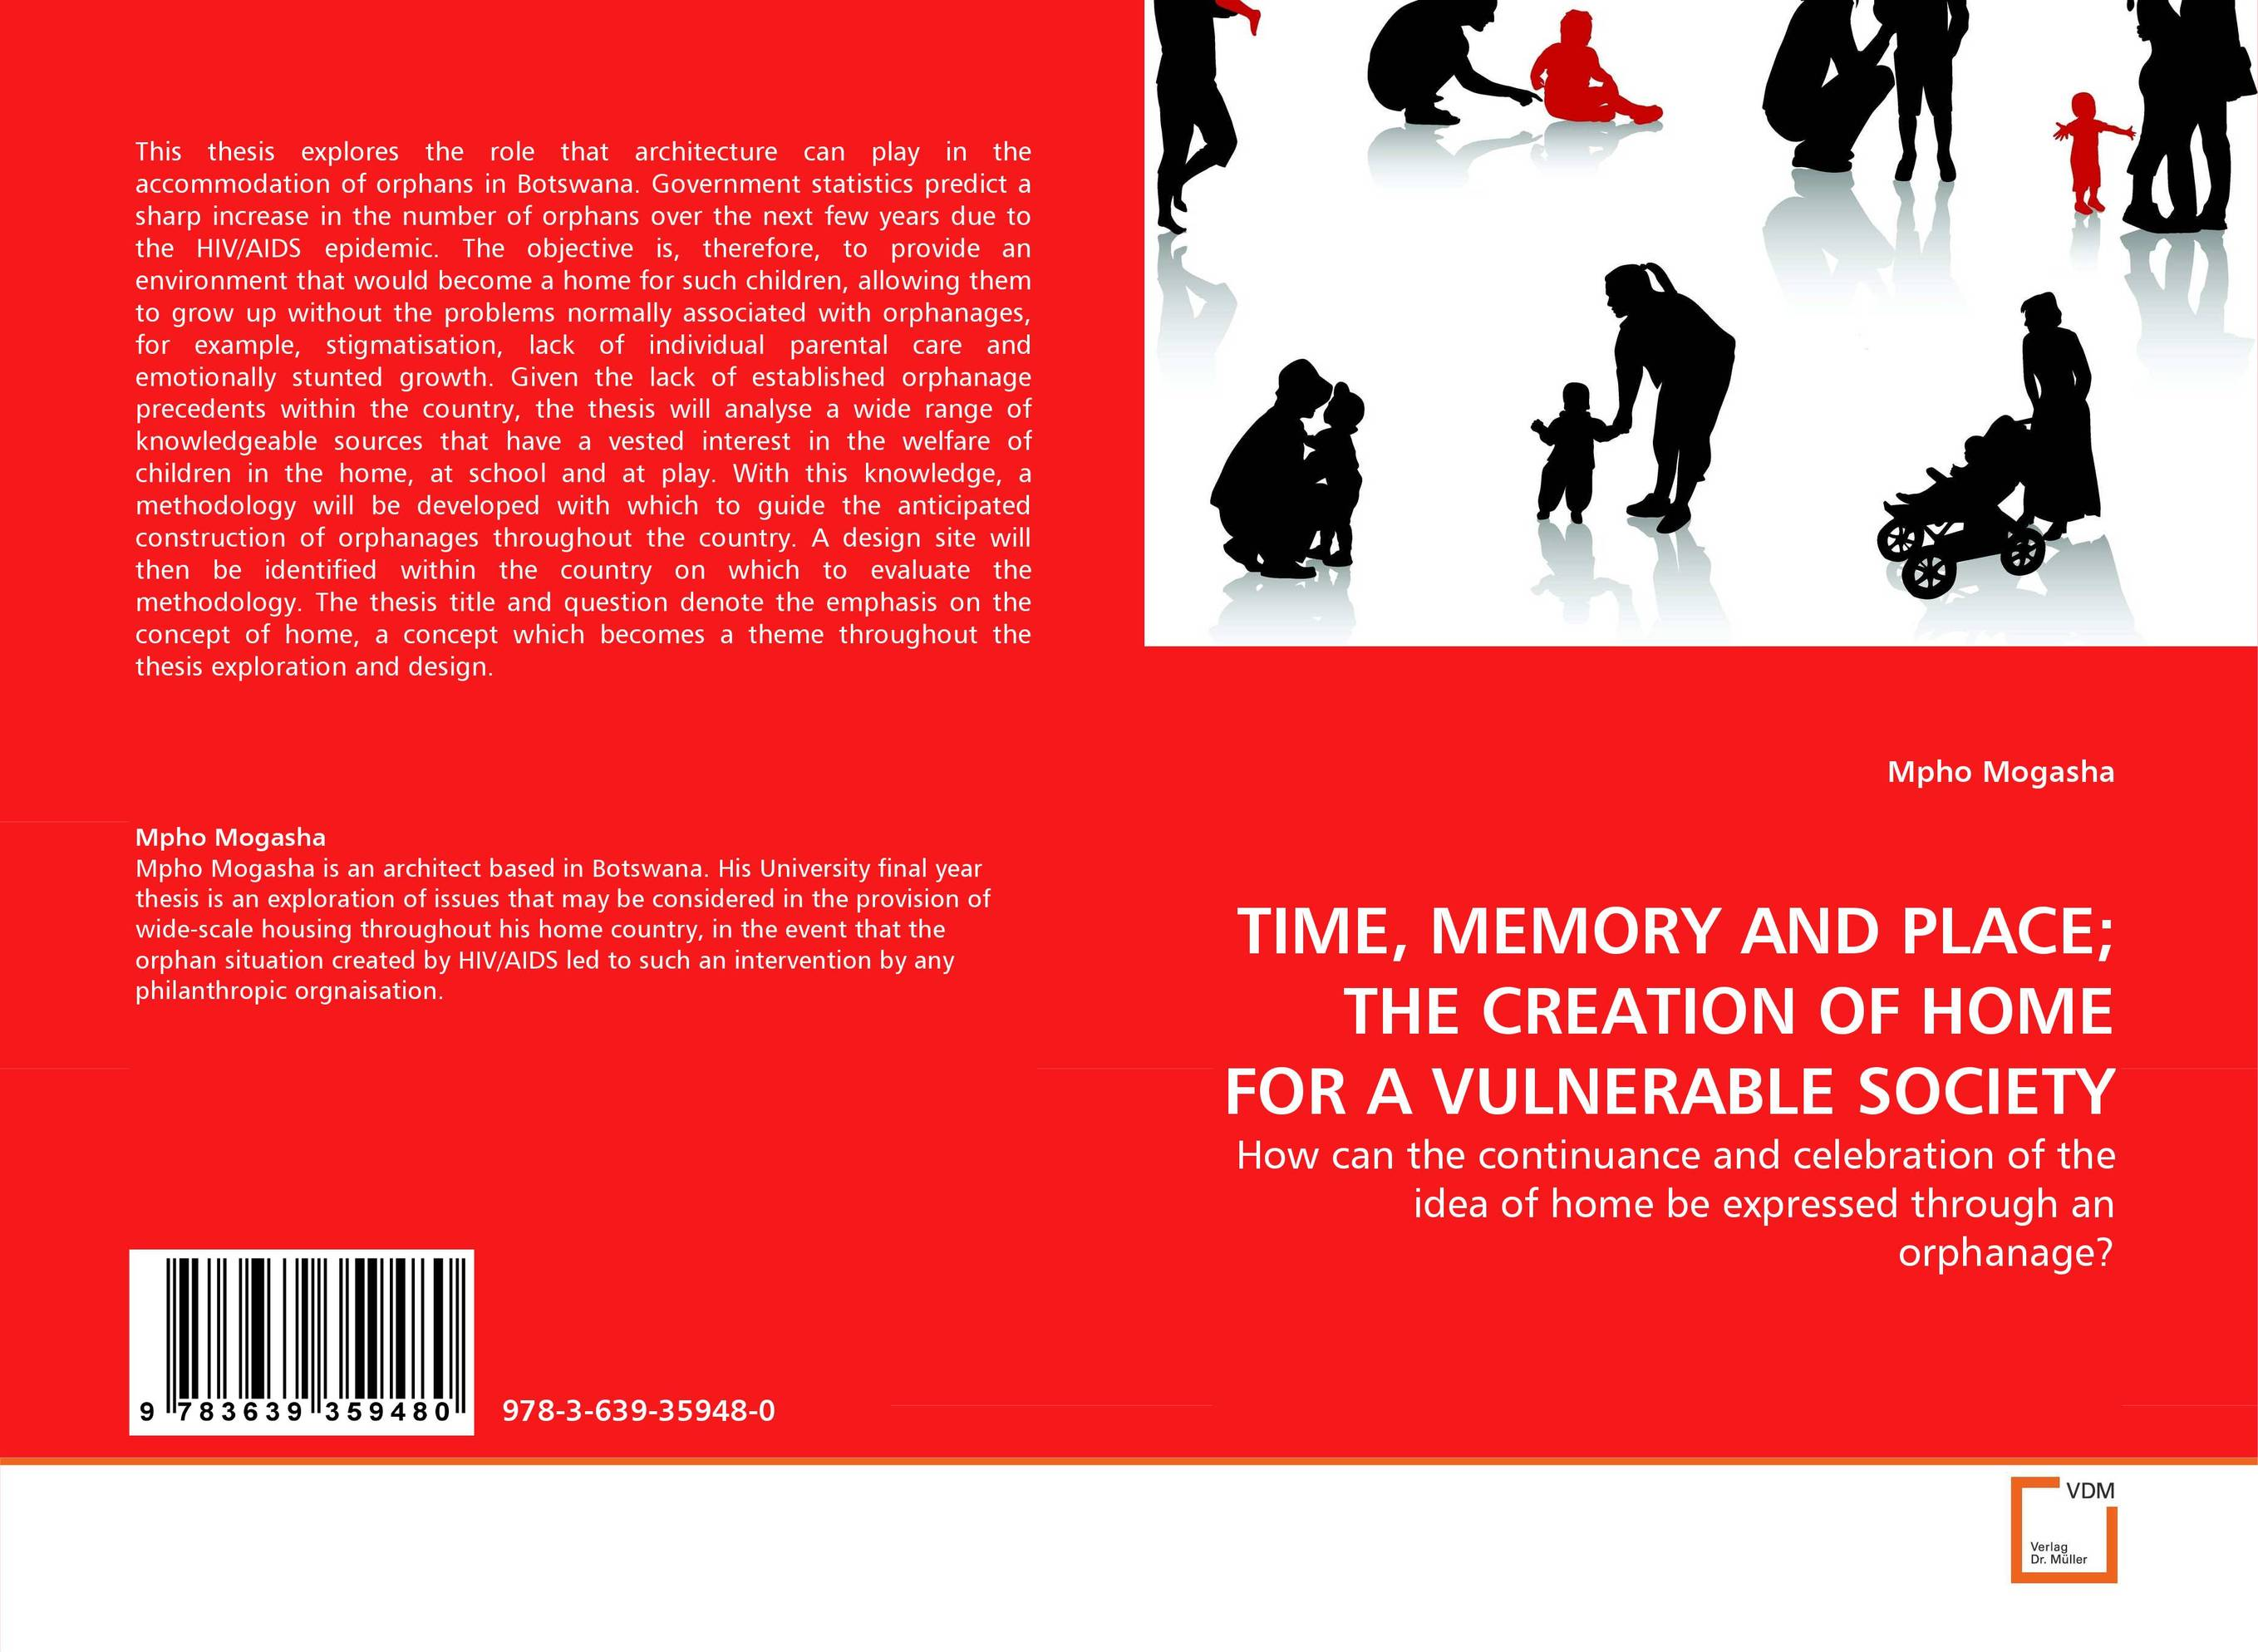 TIME, MEMORY AND PLACE; THE CREATION OF HOME FOR A VULNERABLE SOCIETY god s mountain – the temple mount in time place and memory